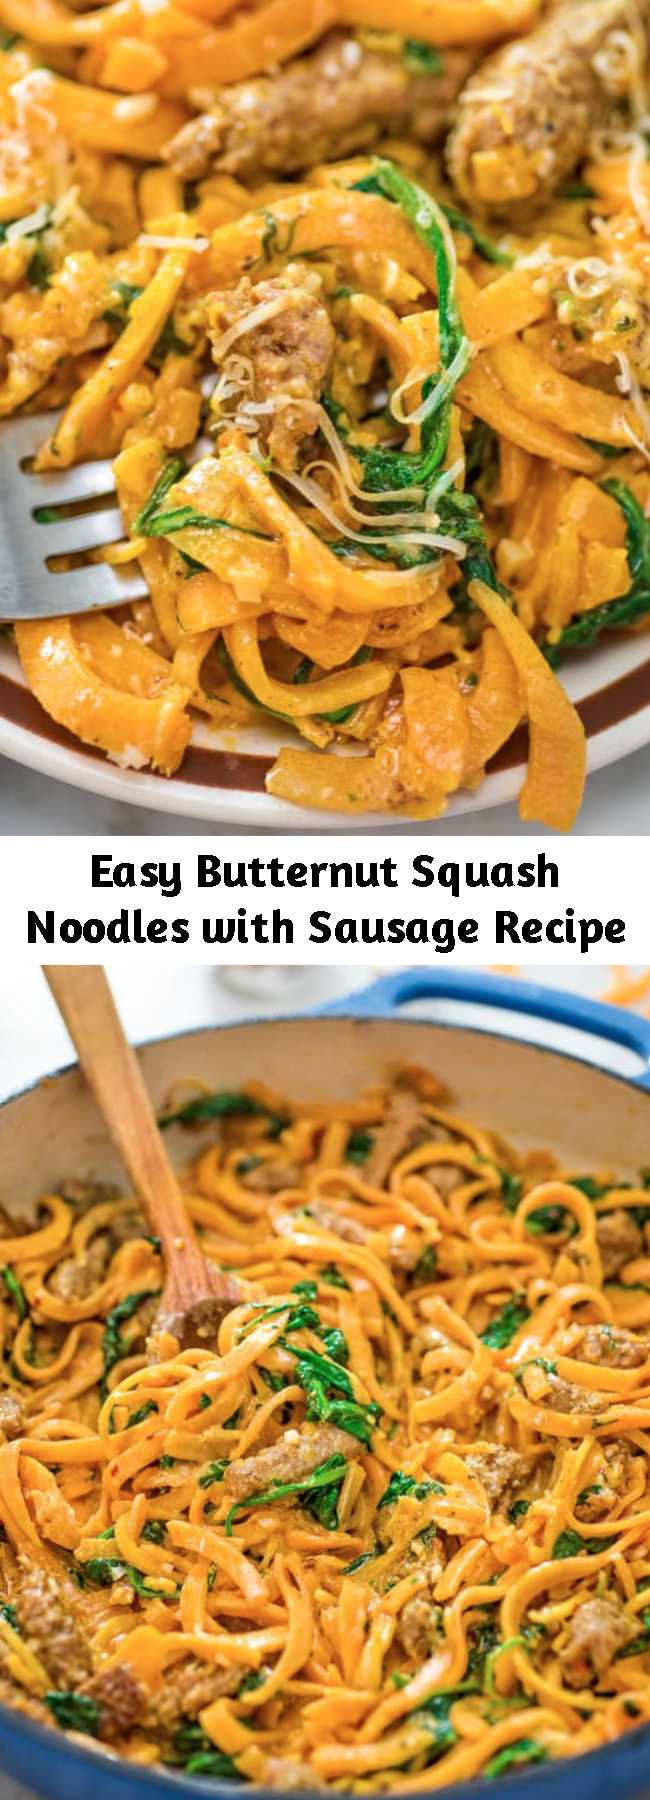 Easy Butternut Squash Noodles with Sausage Recipe - You are going to fall in love with these Butternut Squash Noodles with Sausage! Made with Italian sausage, spinach, spiralized butternut squash, garlic, cream, and Parmesan cheese, this dish is just bursting with flavors! #spiralizer #spiralized #butternutsquash #spiralizerrecipes #dinner #lunch #recipeoftheday #videorecipe #winter